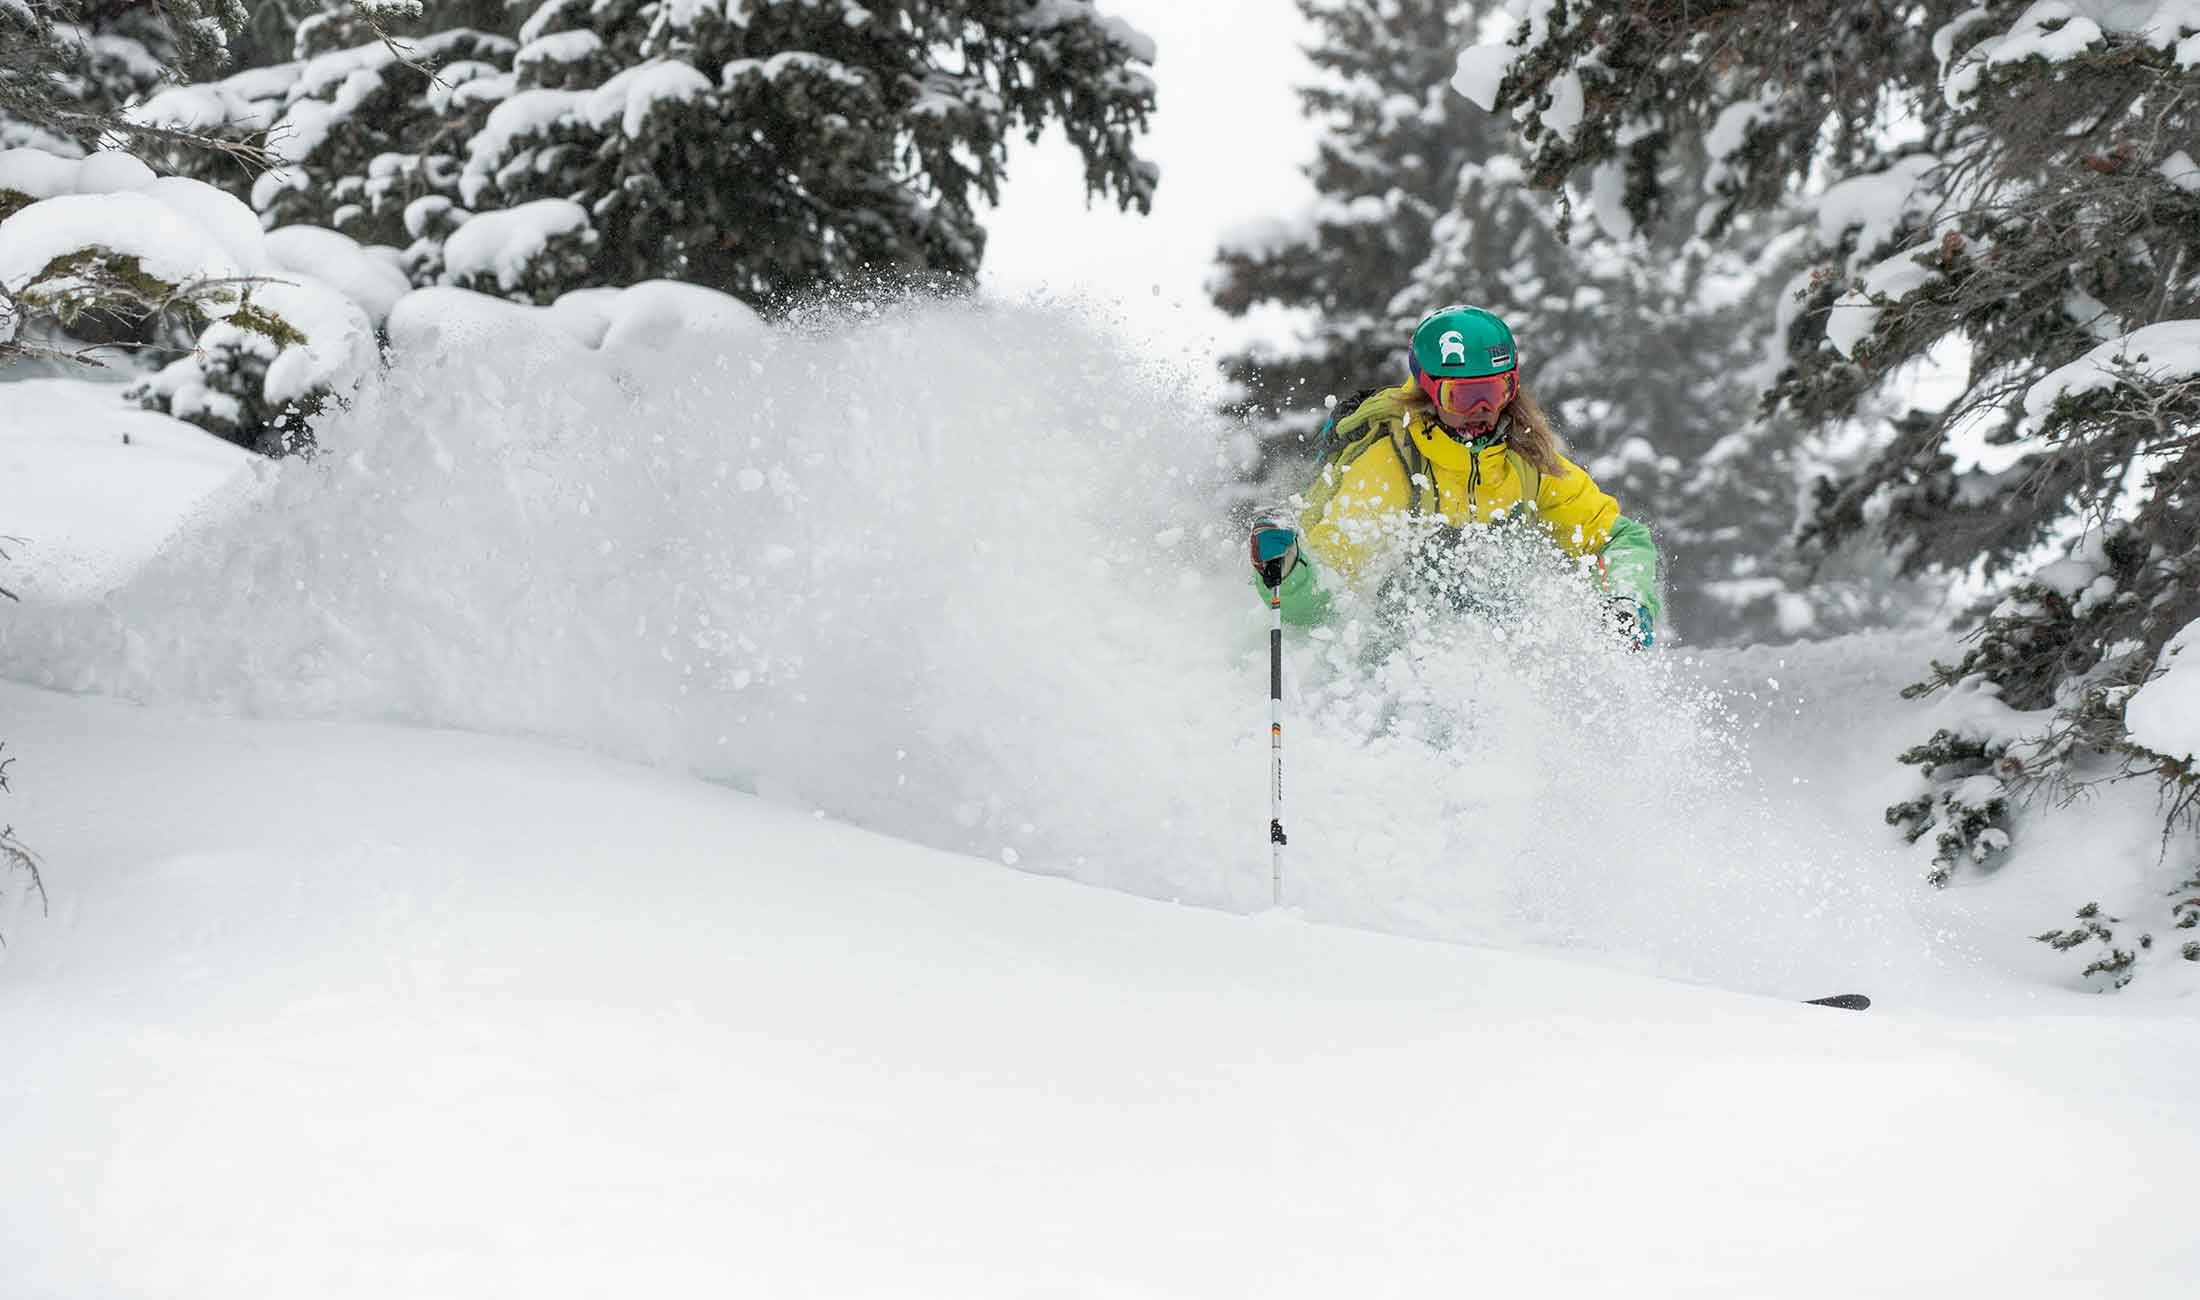 World-class skiing—on your lunch break.